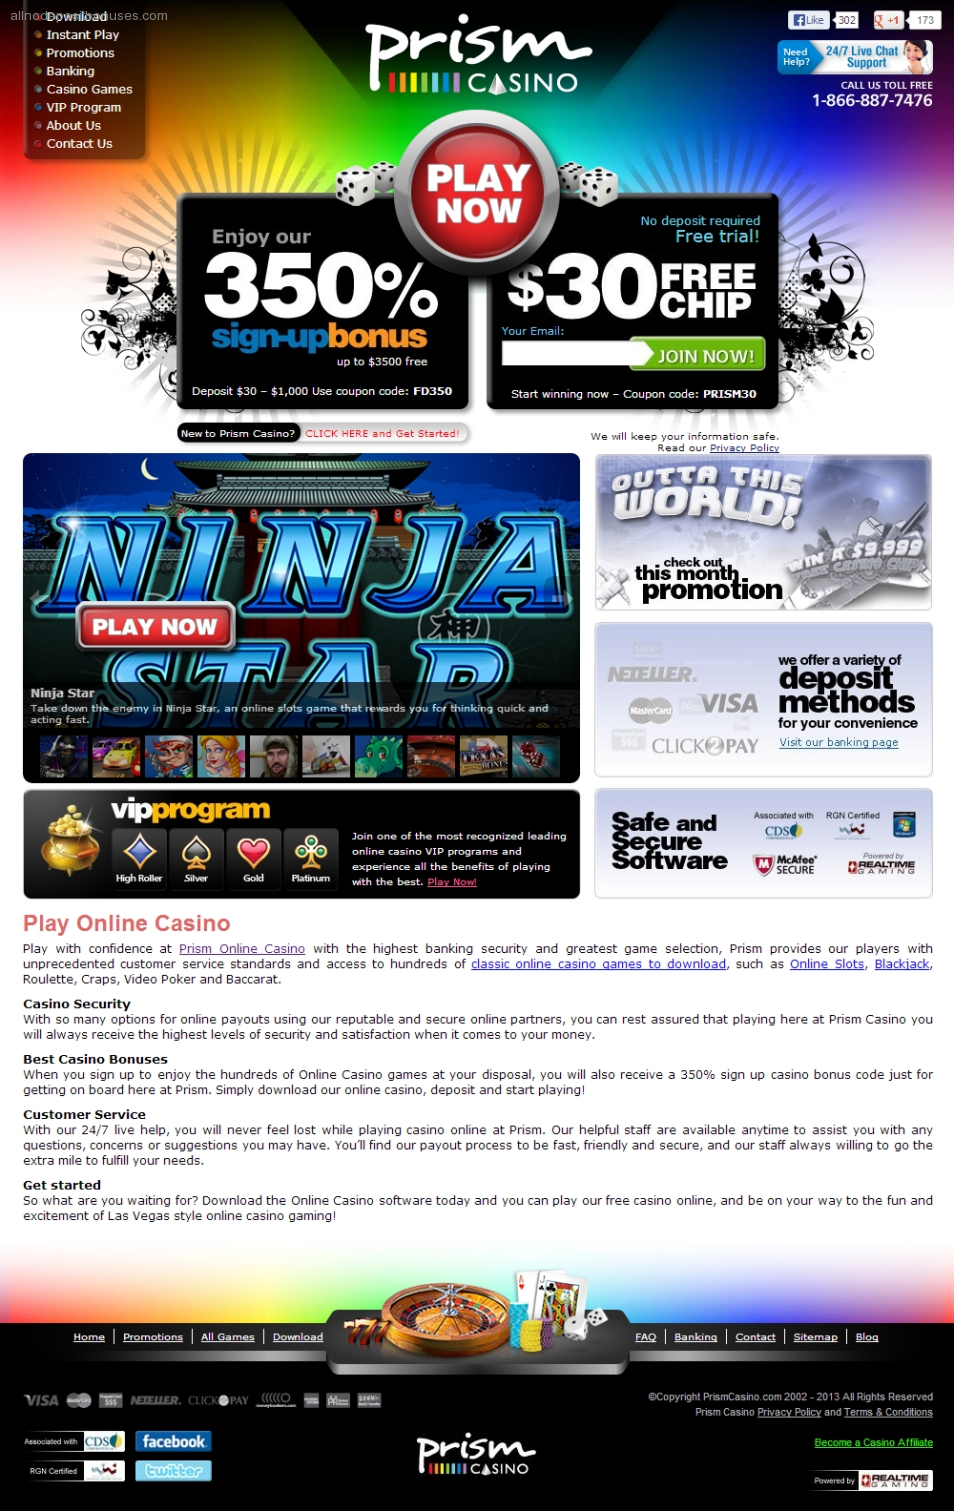 Prism online casino no deposit bonus ceasers casino atlantic city